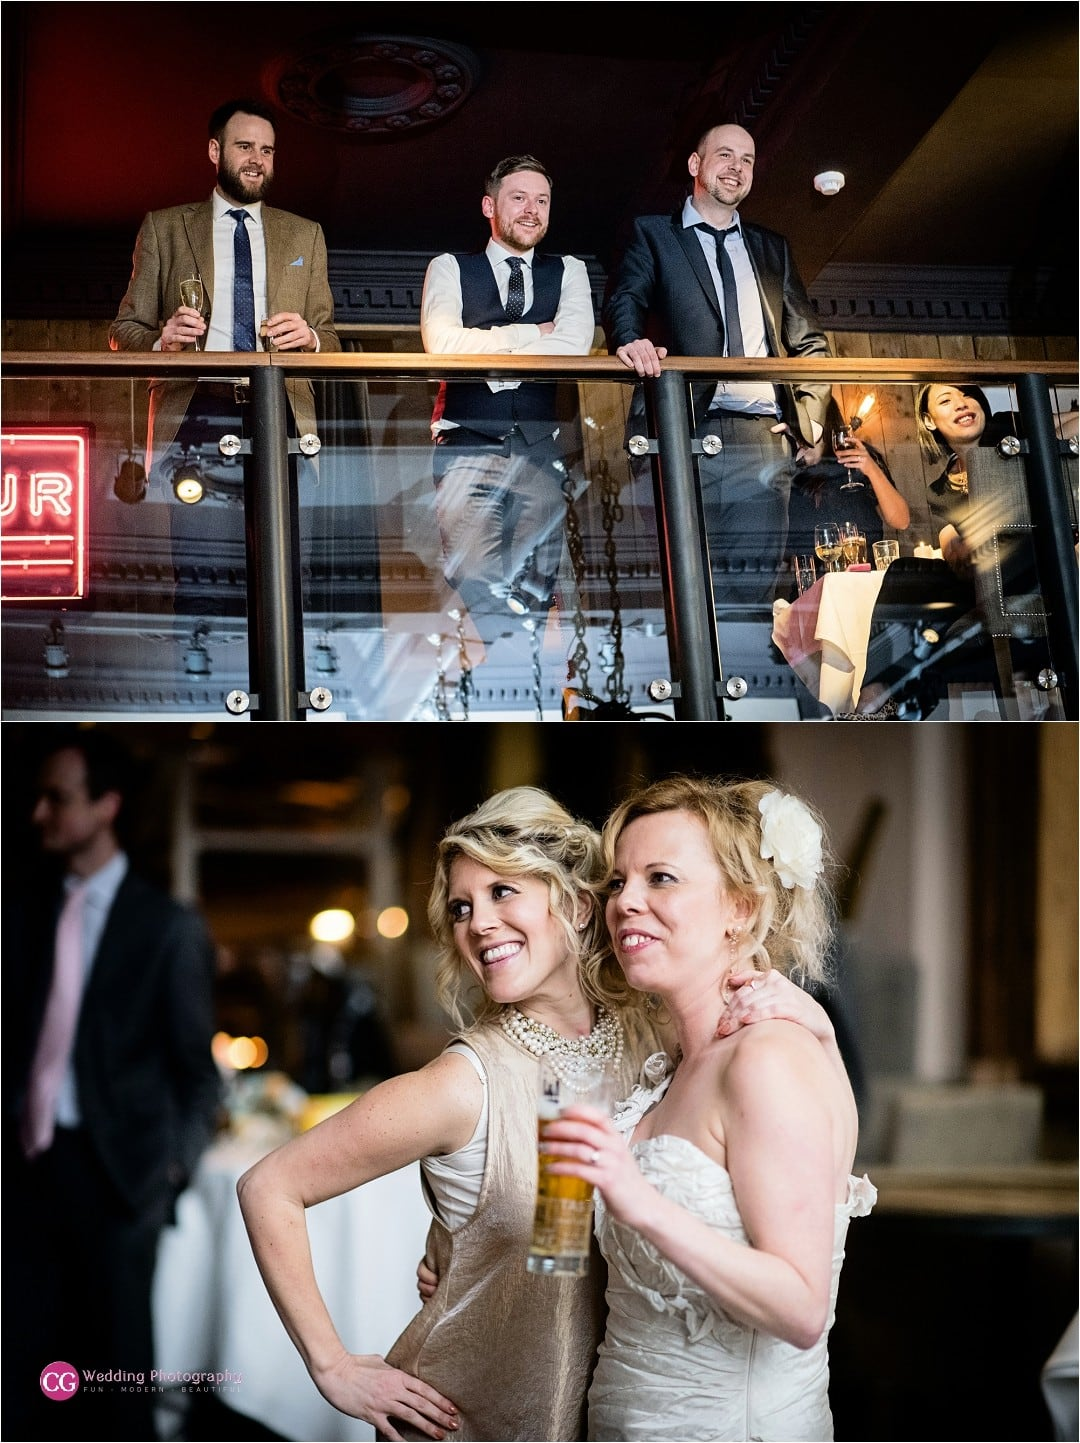 St Barts Brewery Wedding Photography